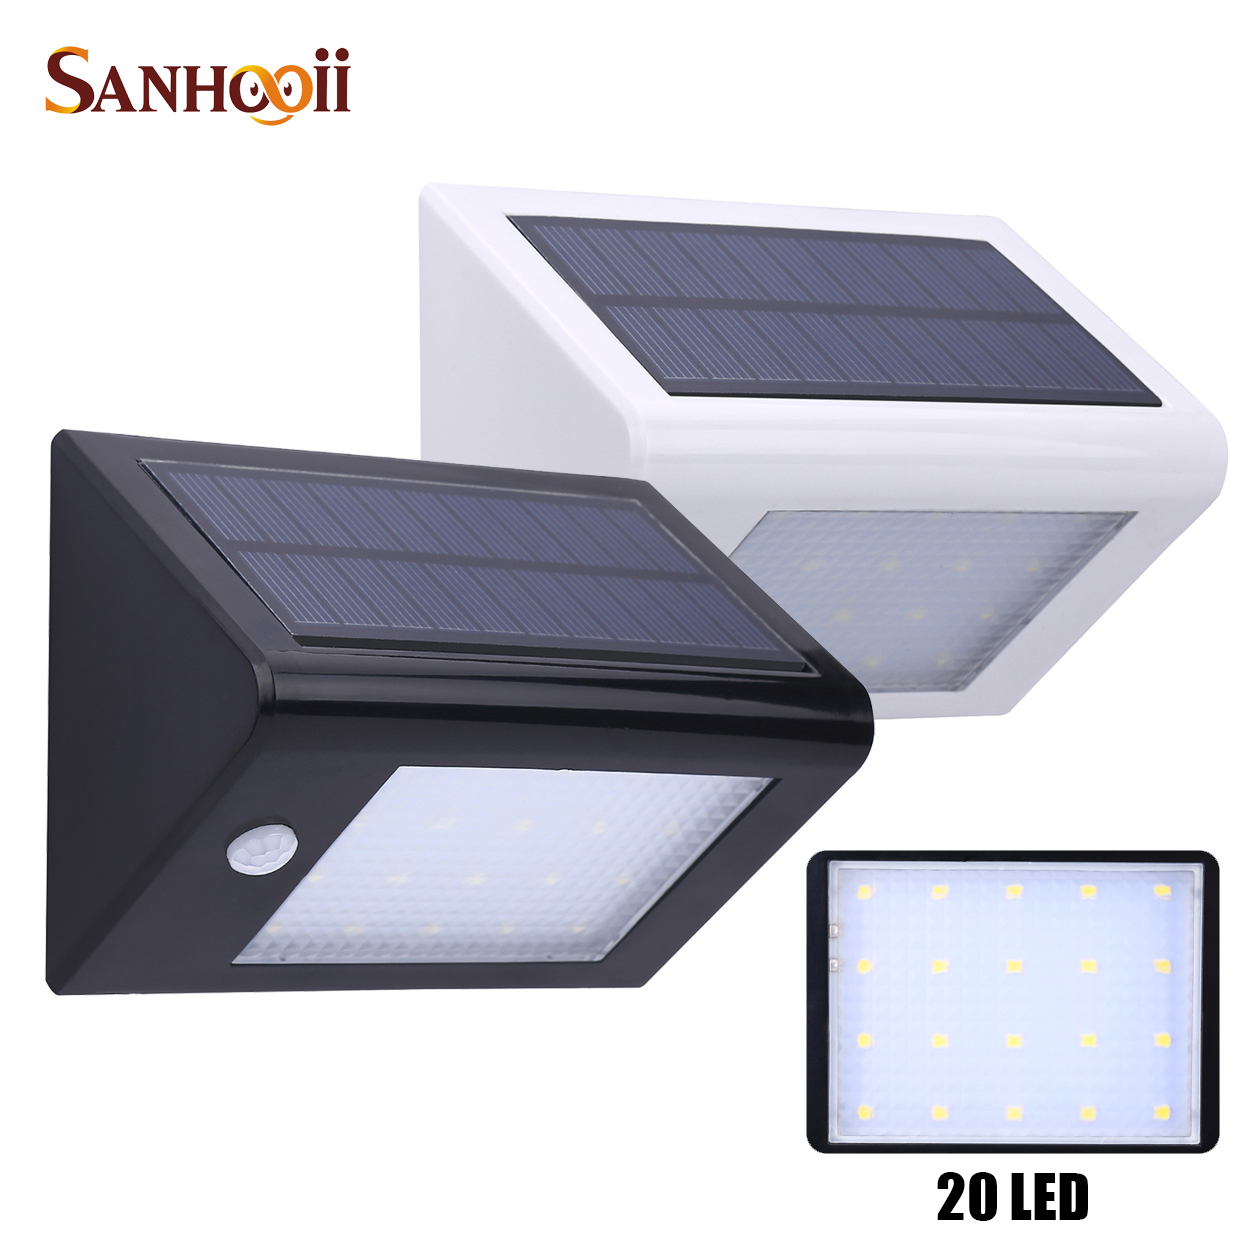 Yardbright coupon codes - Aliexpress Com Buy Elegance Outdoor Solar Wall Light Power Pir Motion Sensor Garden Yard Bright Garage Door Lamp Ip65 Waterproof 350lm 20 Led From